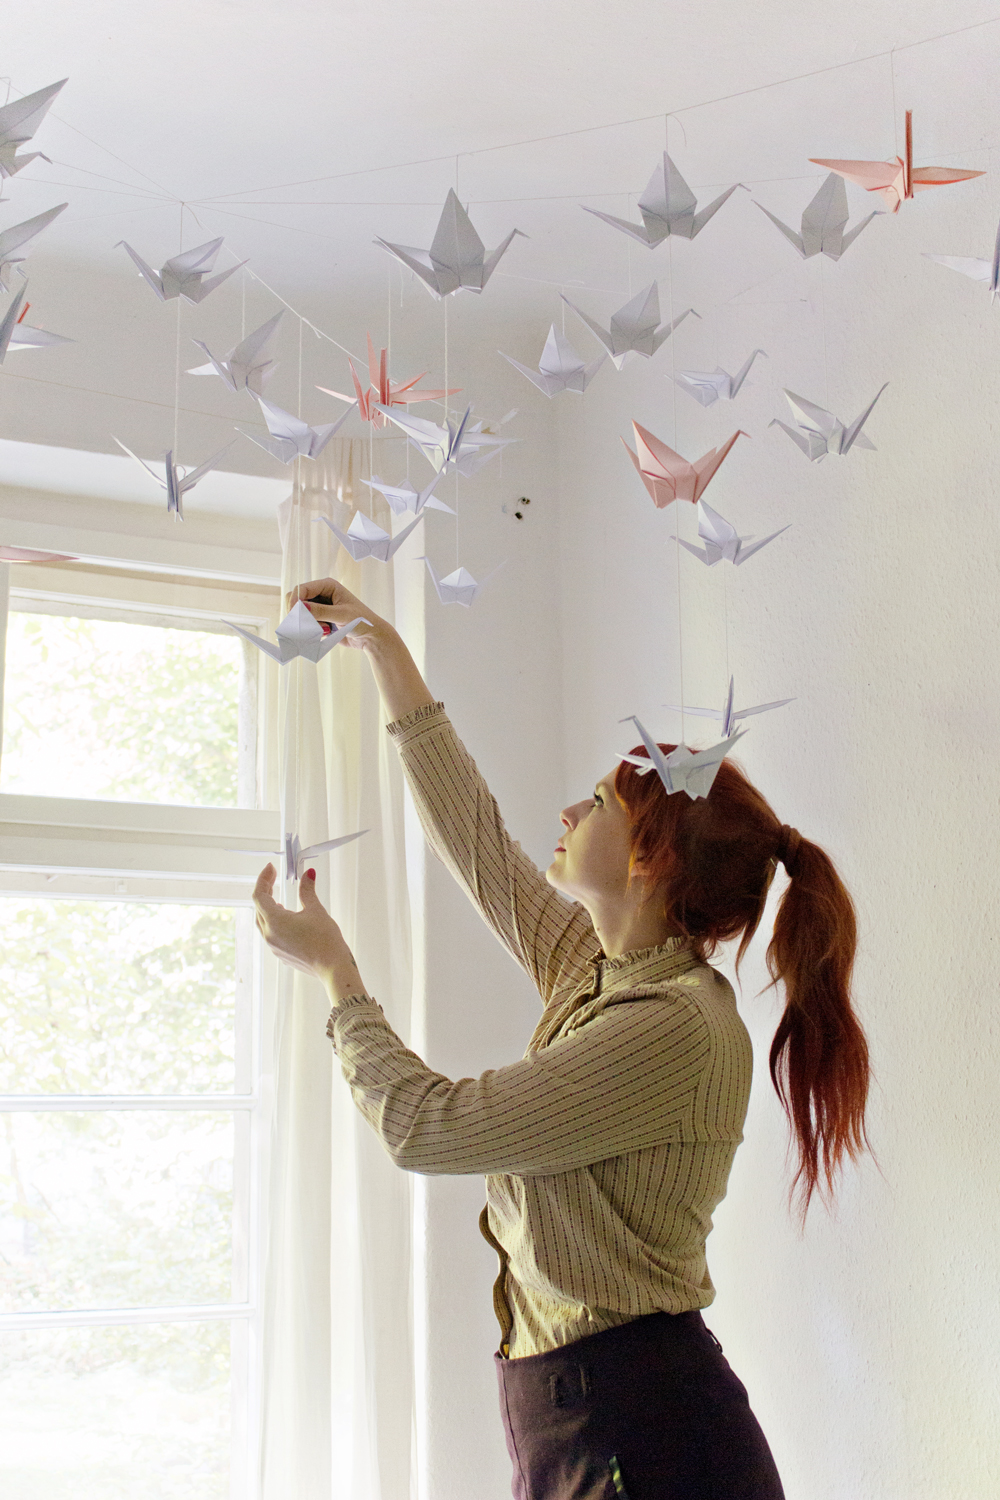 How To Make Paper Christmas Ceiling Decorations : Diy renters friendly origami ceiling decoration